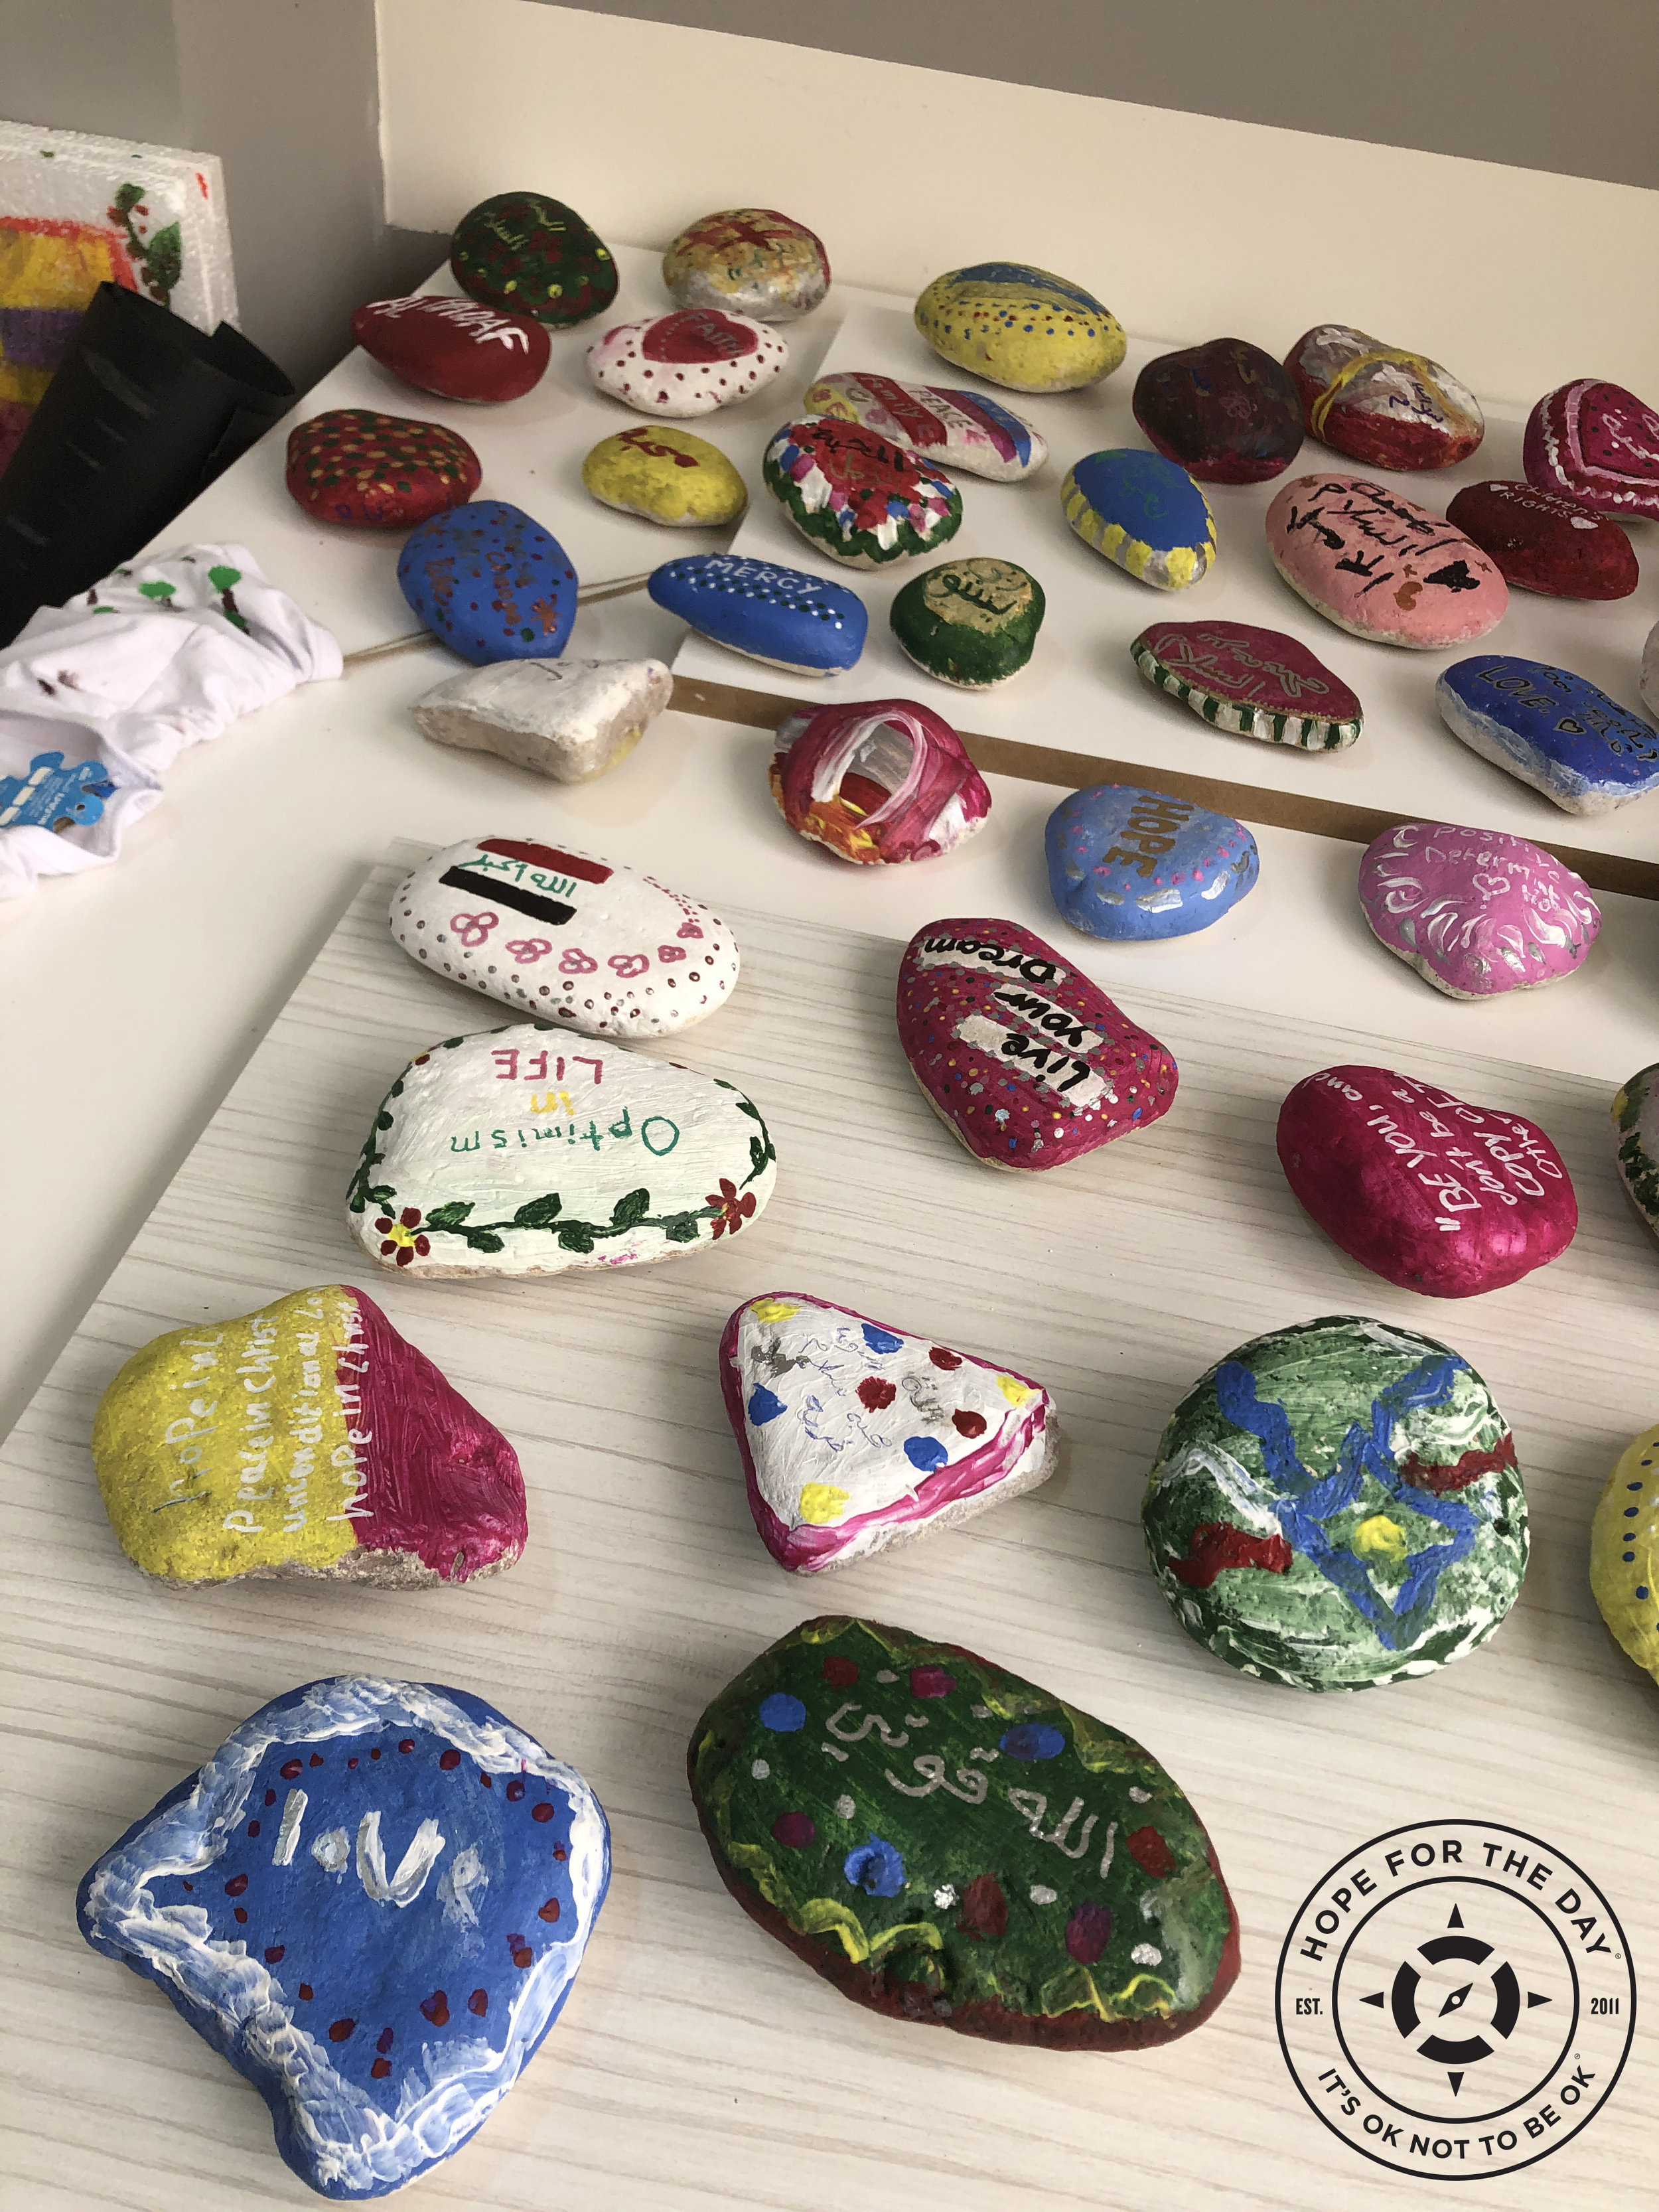 Freshly painted rocks, decorated with positivity for the Kindness Rocks Project Photo: Nancy Bartosz